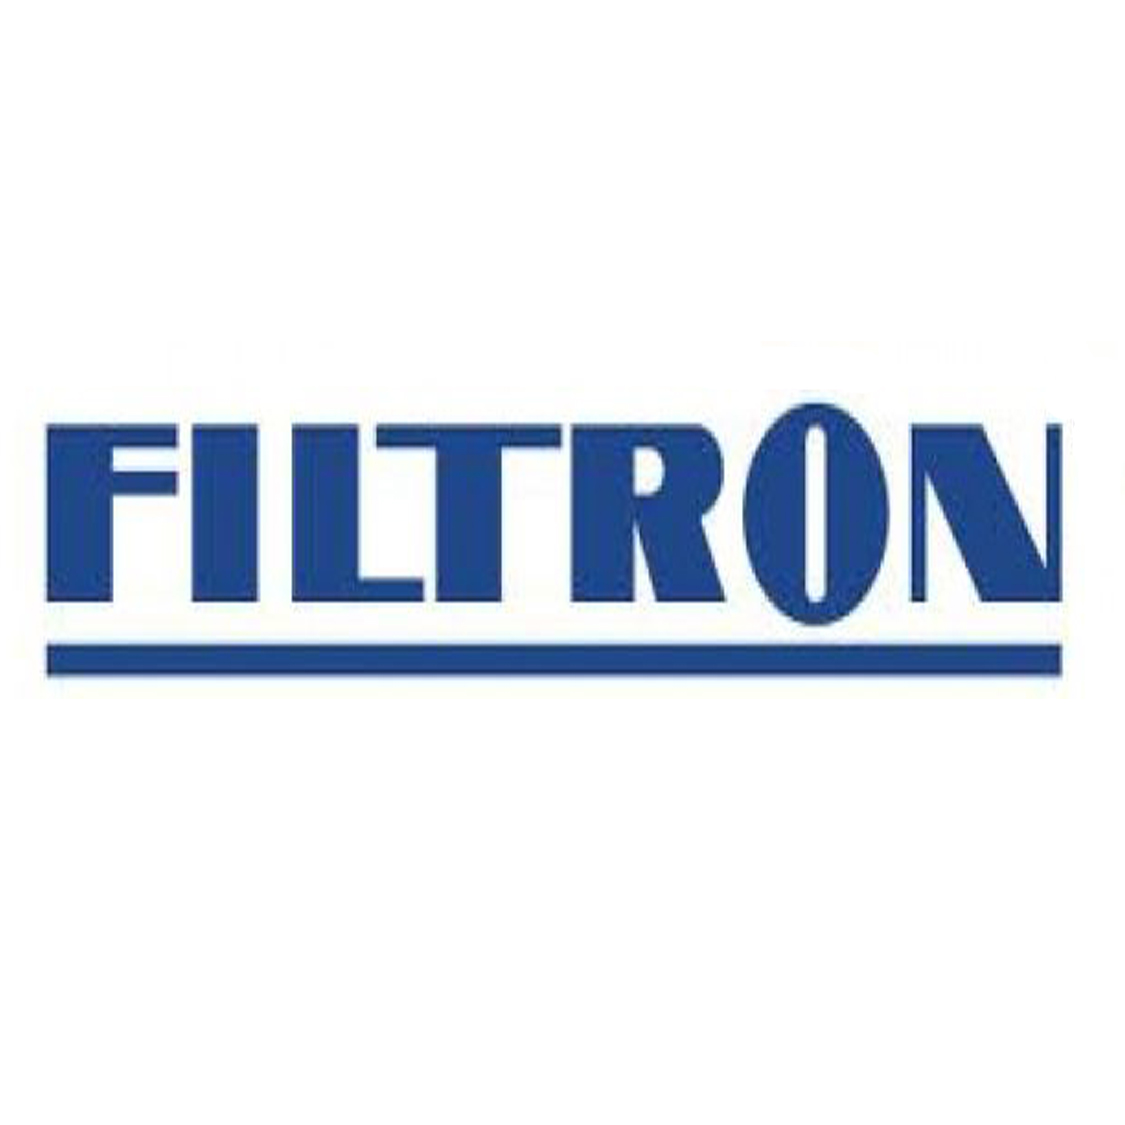 Marketing Campaign from FILTRON!